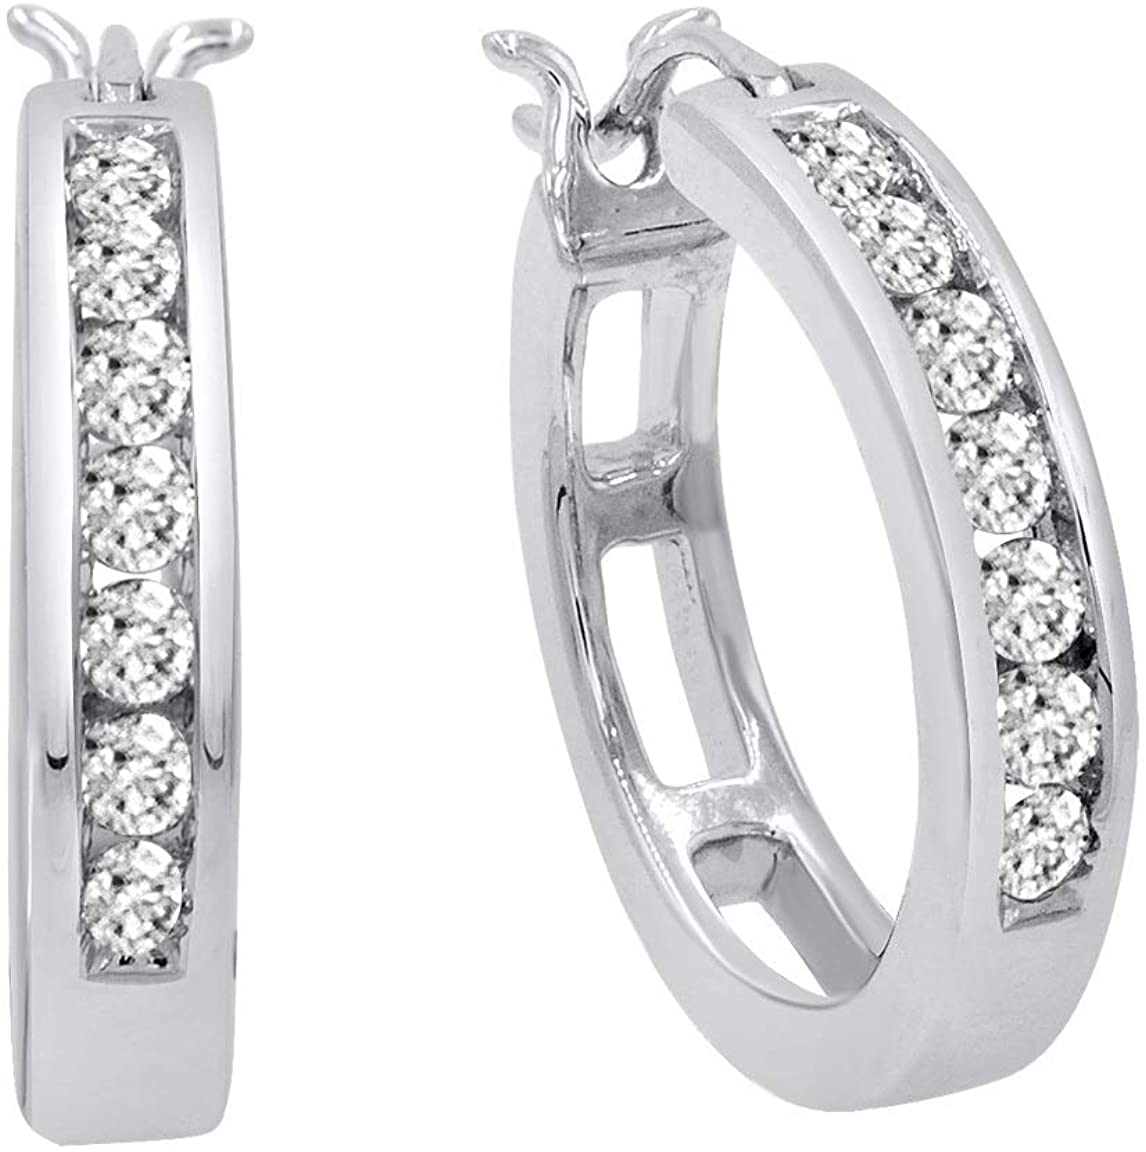 AGS Certified 1/2ct TW Diamond Hoop Earrings